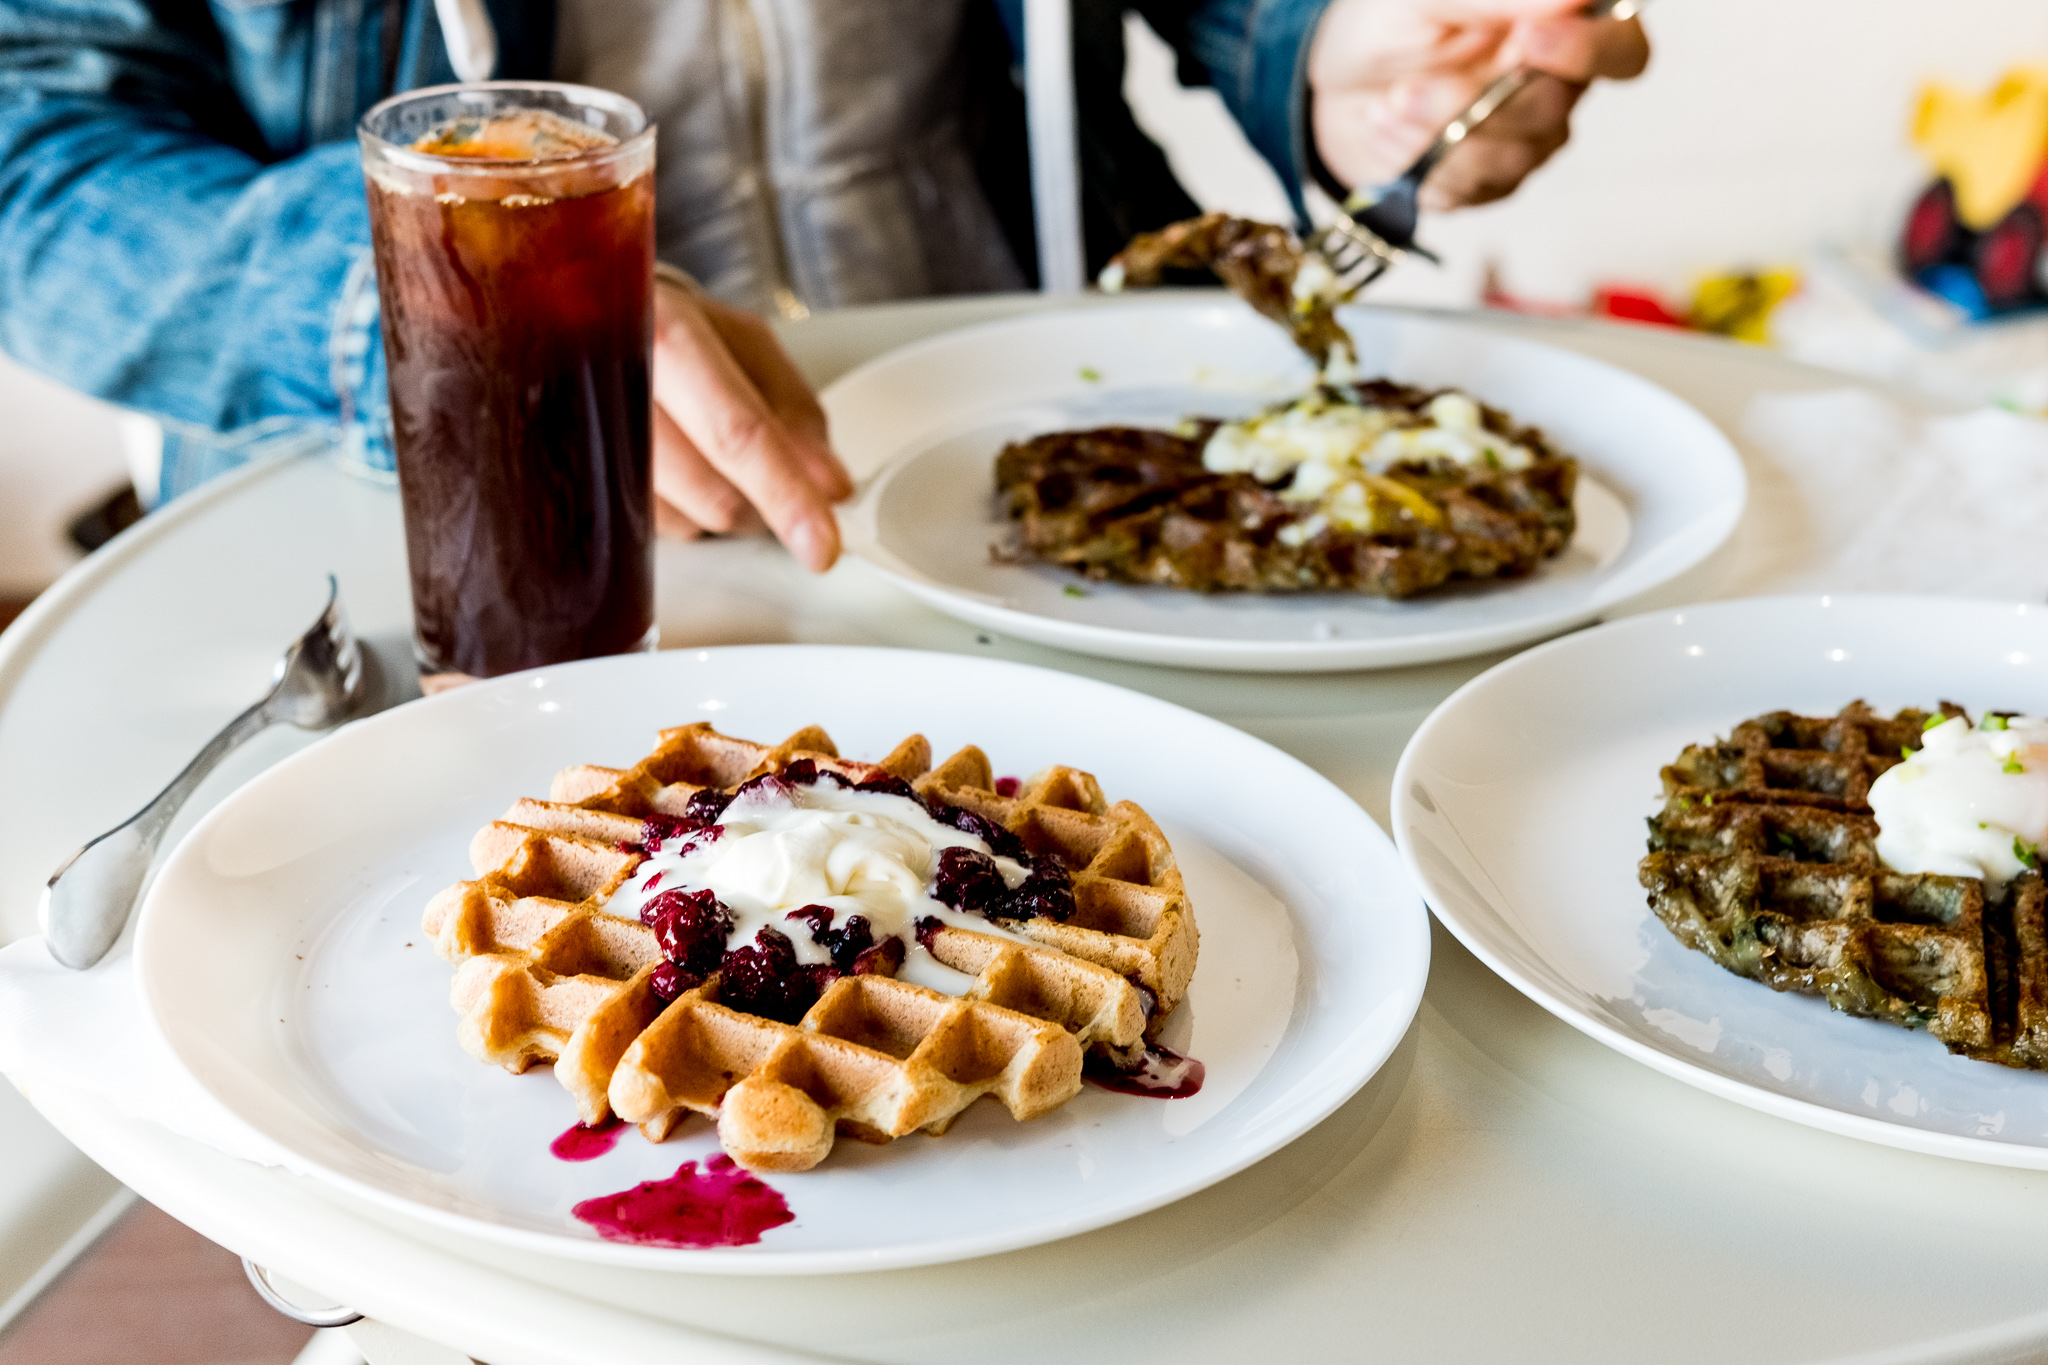 Three plates of waffles. Two appear to be made with darker batter and the other is a lighter color with a berry compote topping and cream.